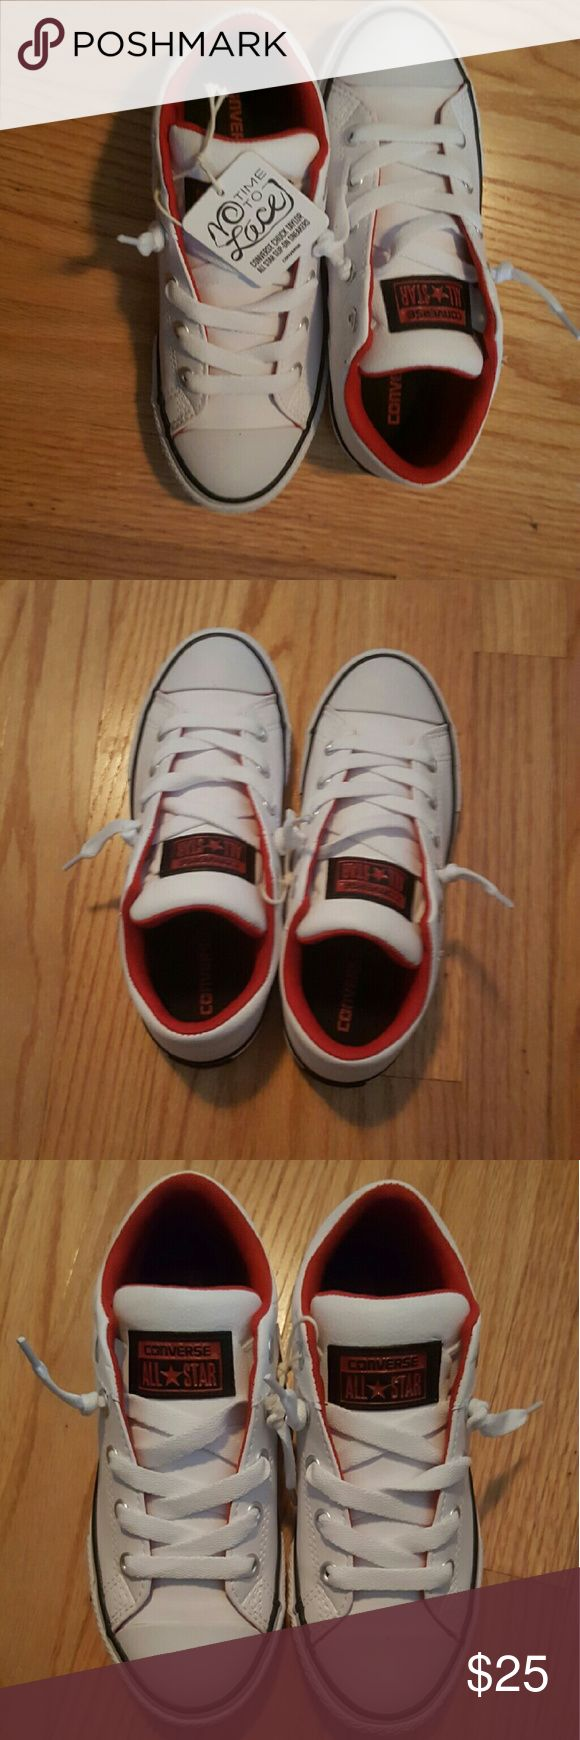 White leather Converse White leather with red insole and navy blue trim Converse Shoes Sneakers